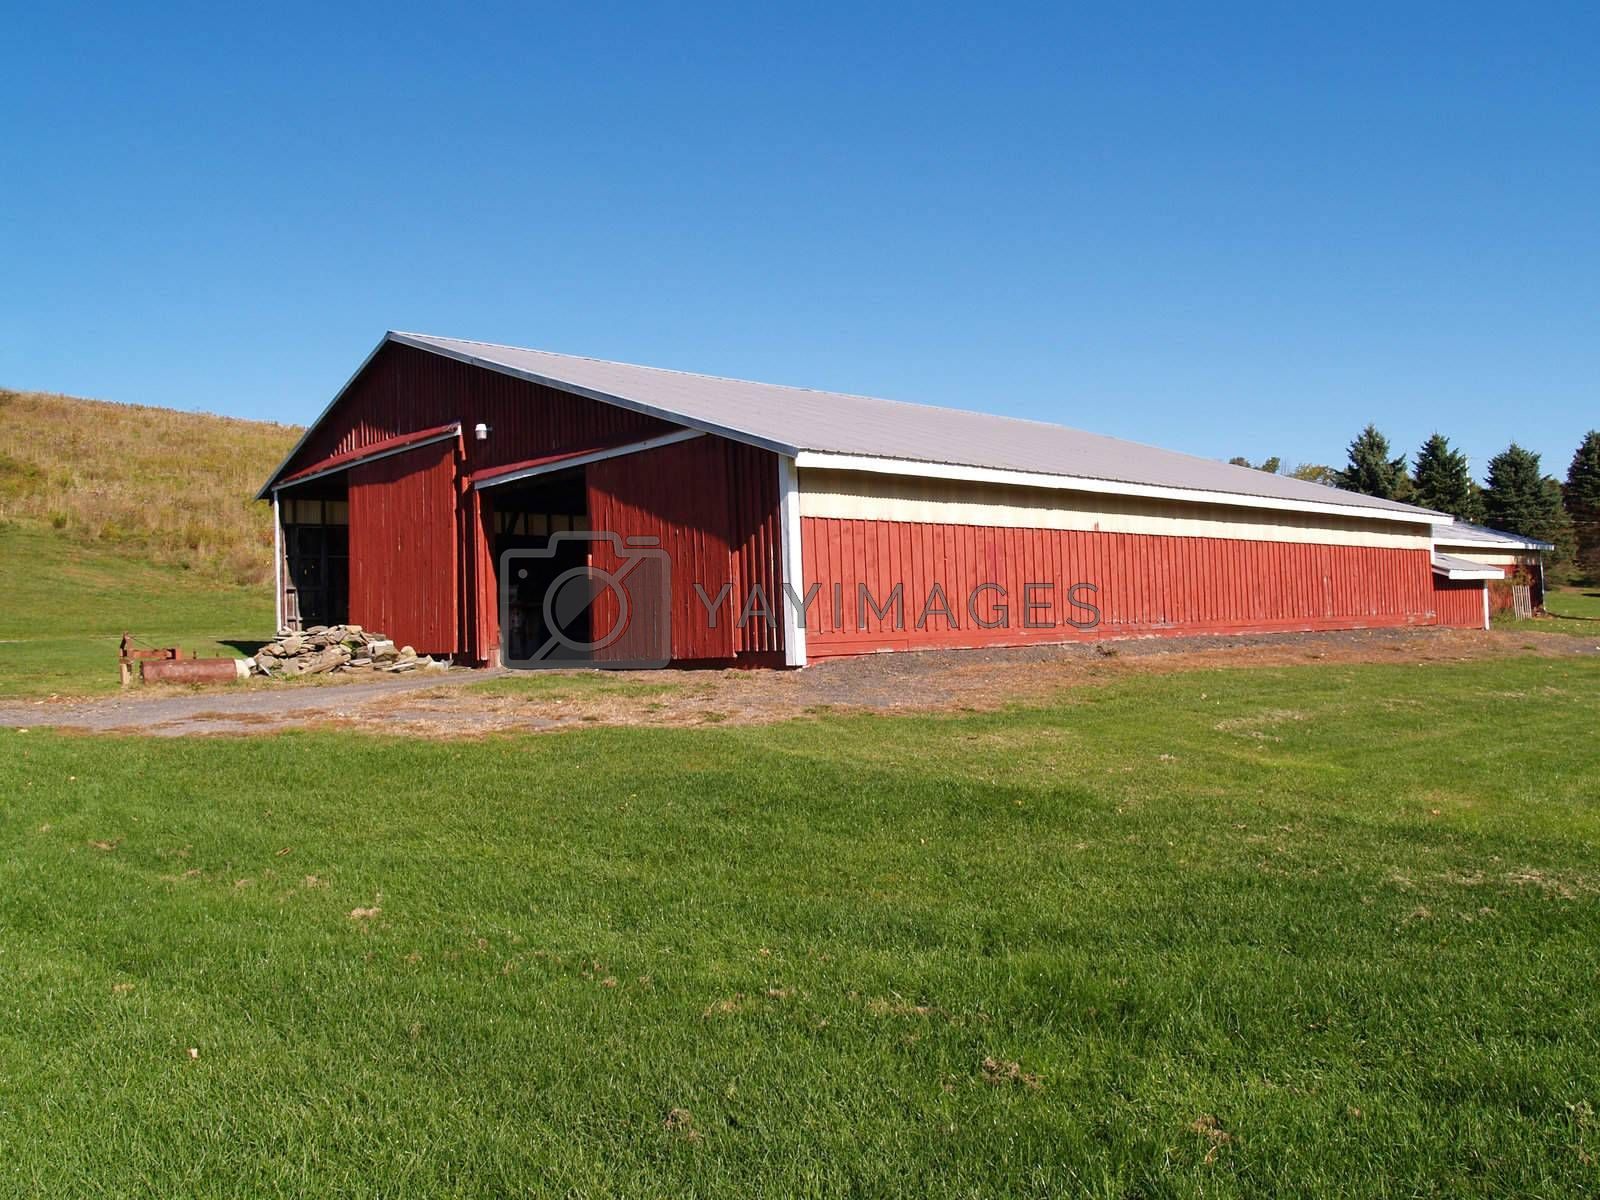 view of a large red barn in the country